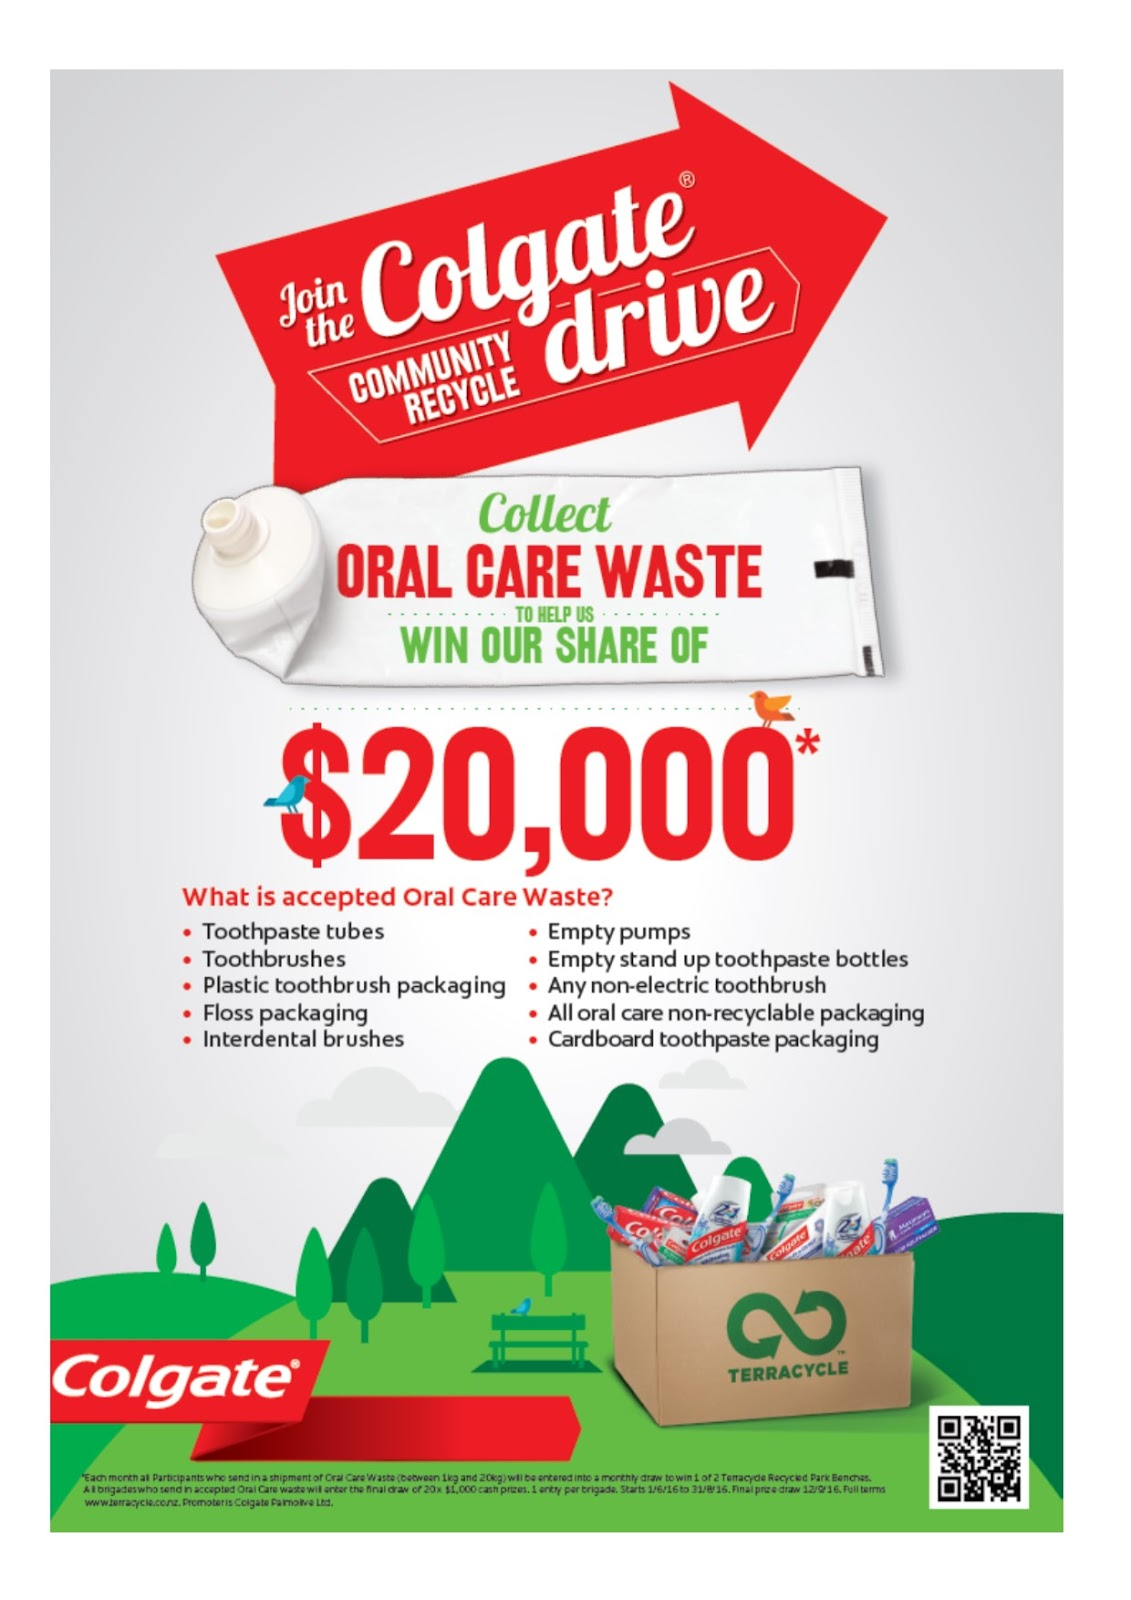 Colgate Community Recycle Drive Resource Poster.jpg